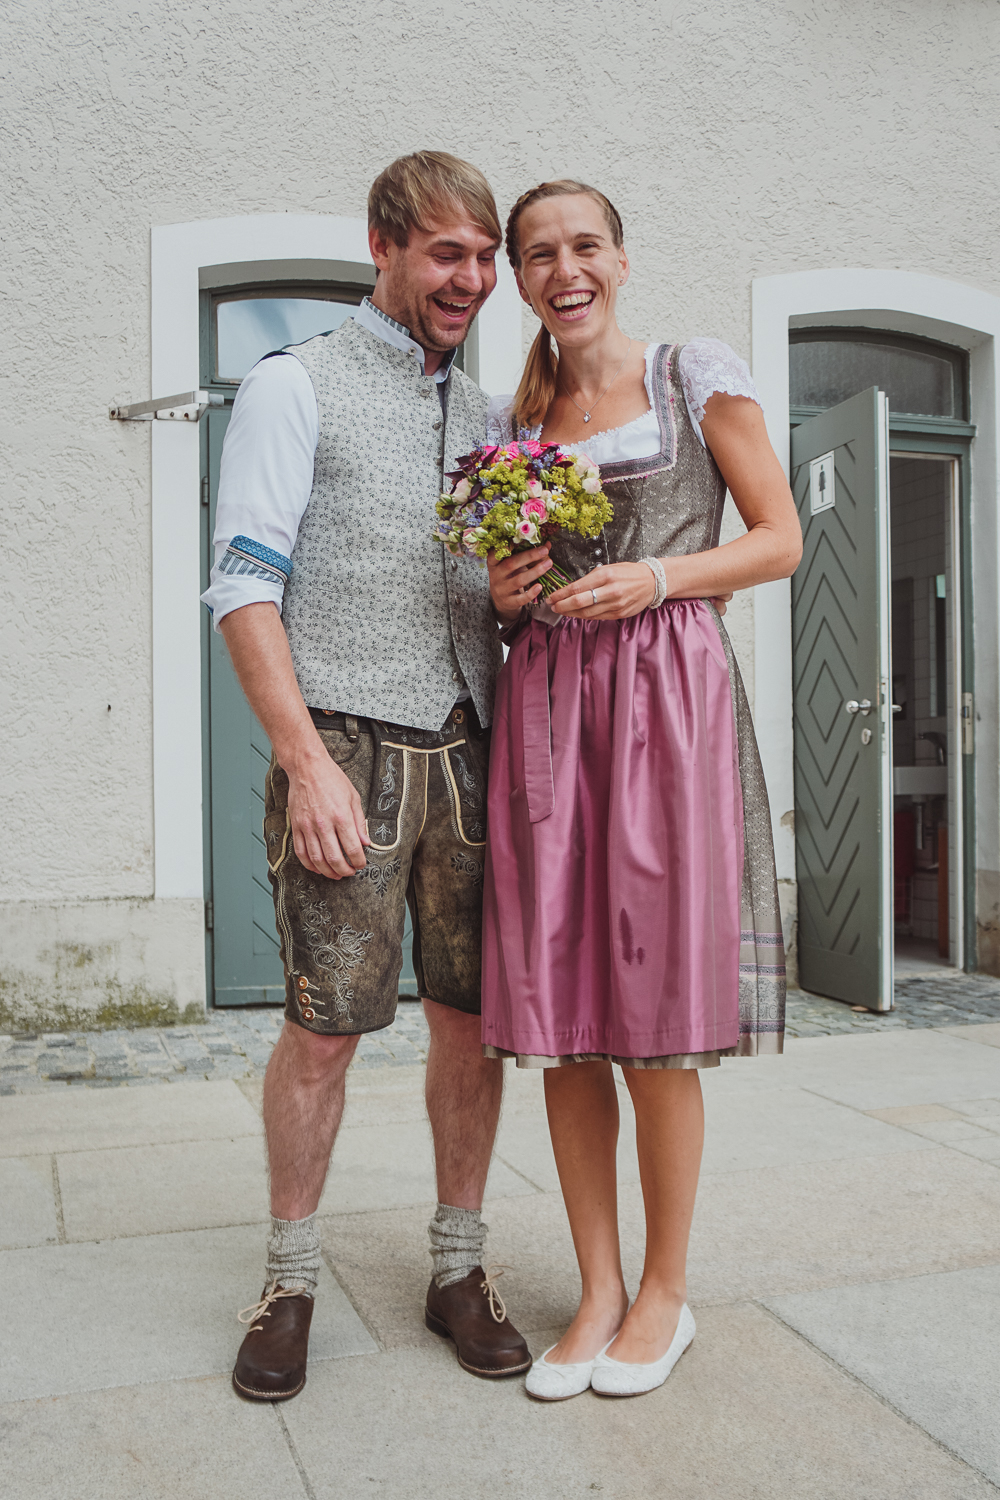 Newlyweds in traditional dress, Passau, Germany